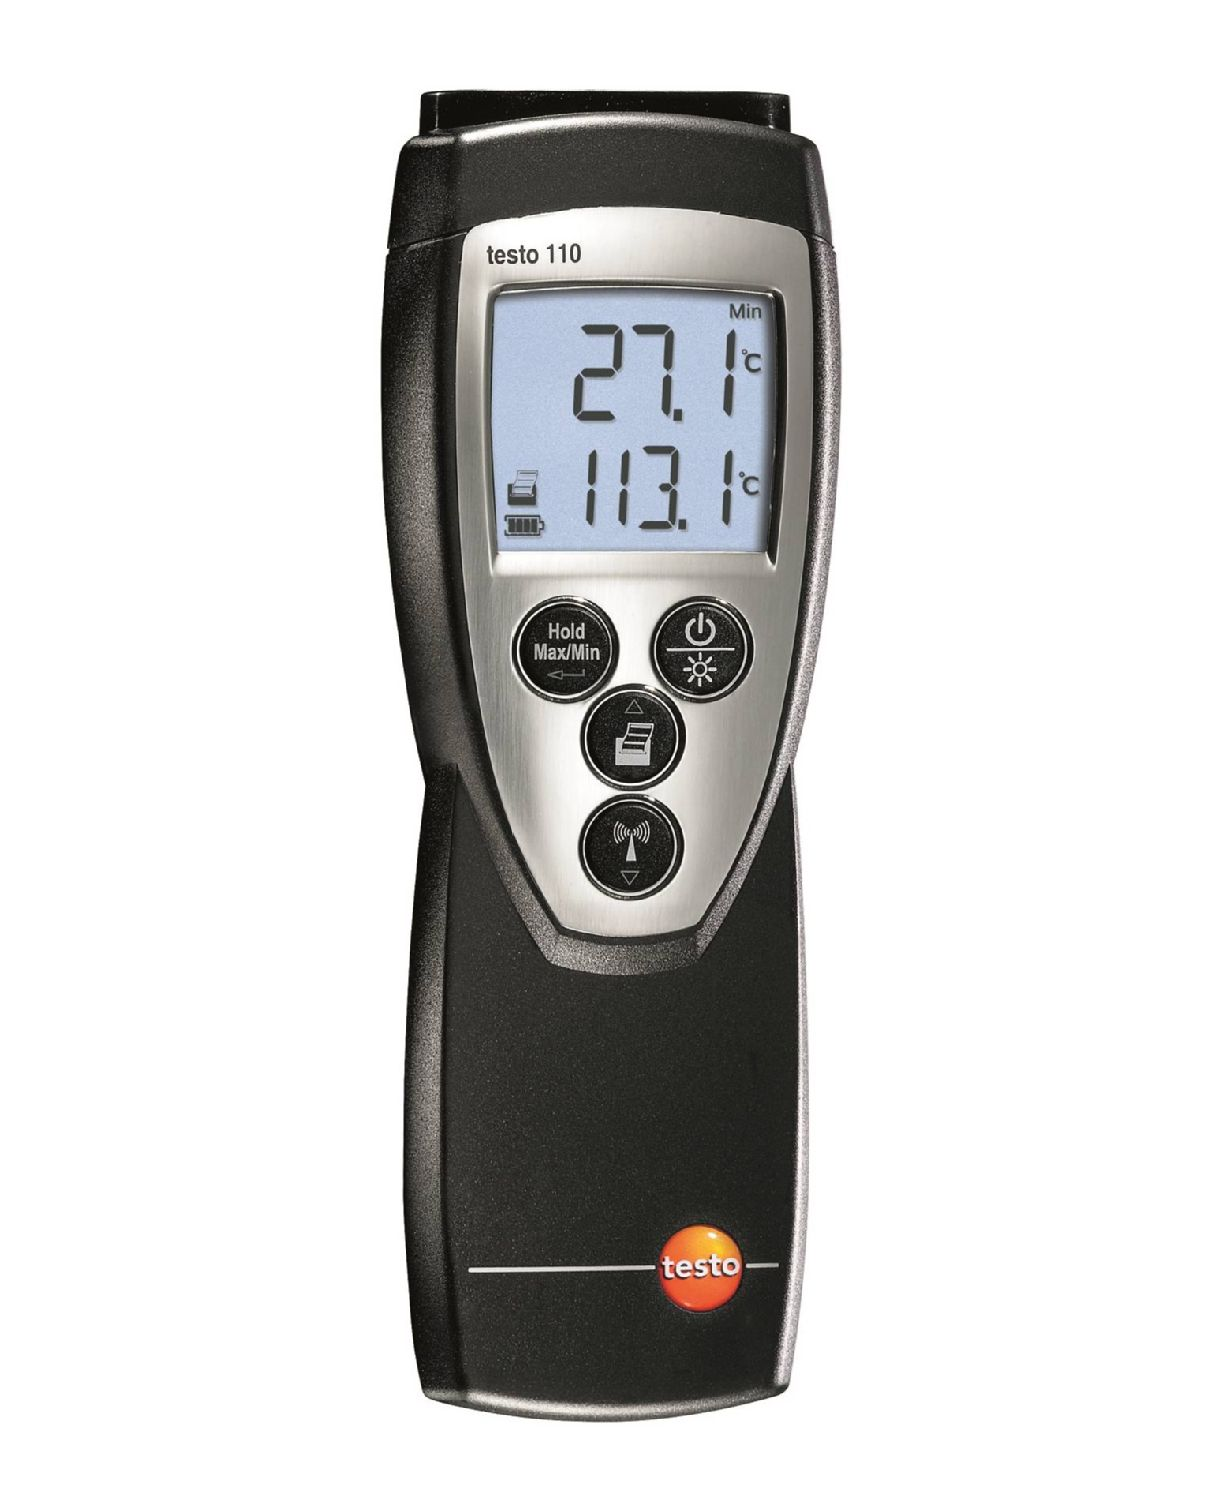 testo 110 temperatuur meetinstrument